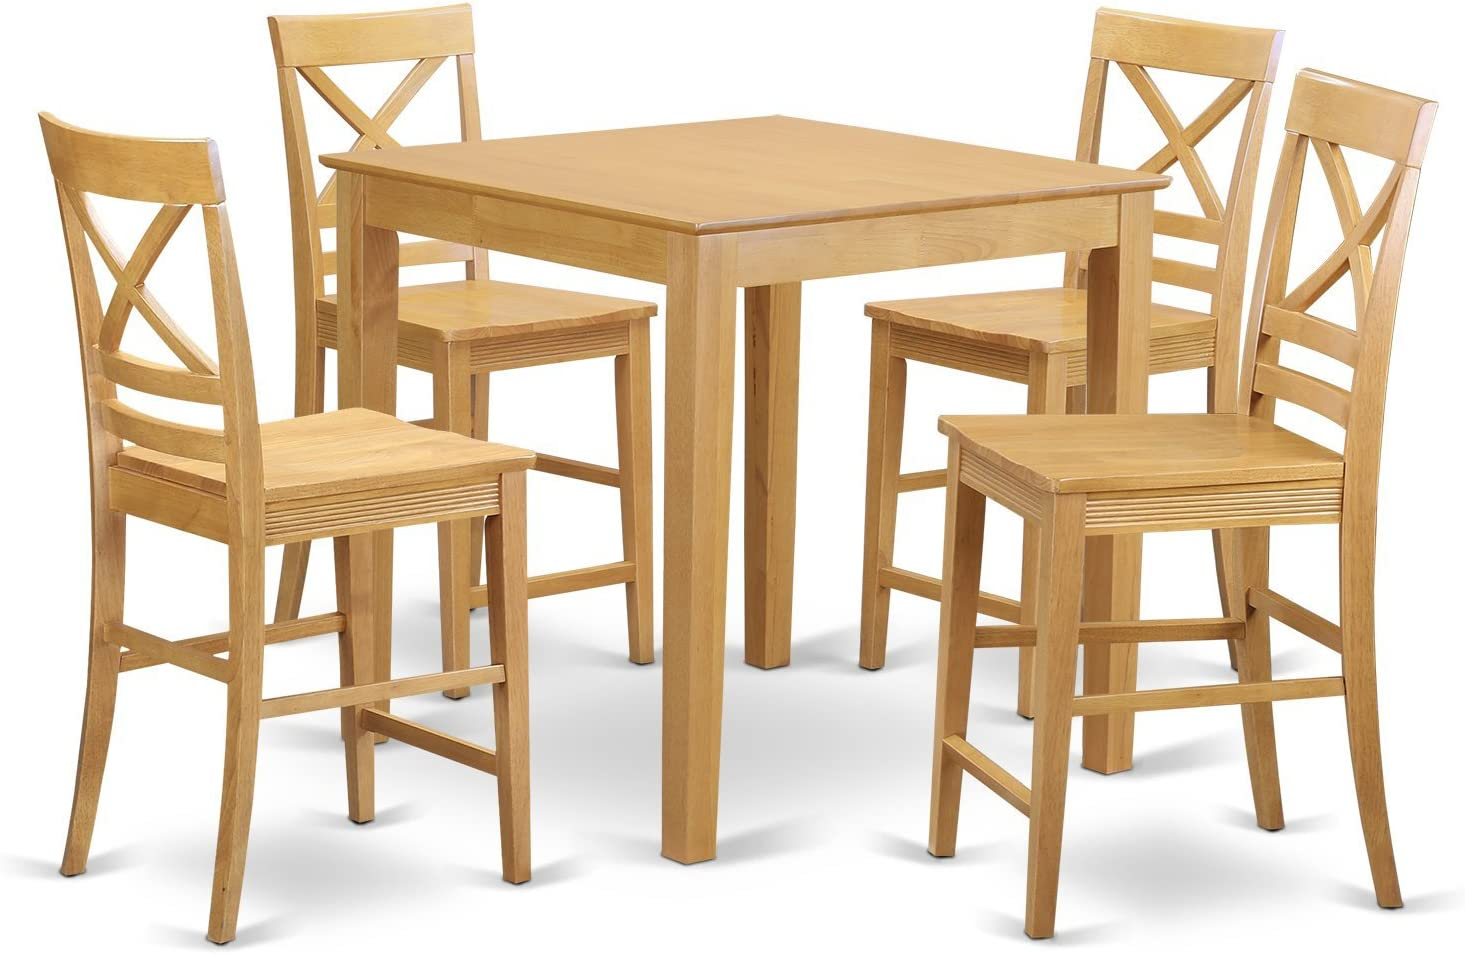 PBQU5-OAK-W 5 PC counter height Dining set – counter height Table and 4 counter height stool.